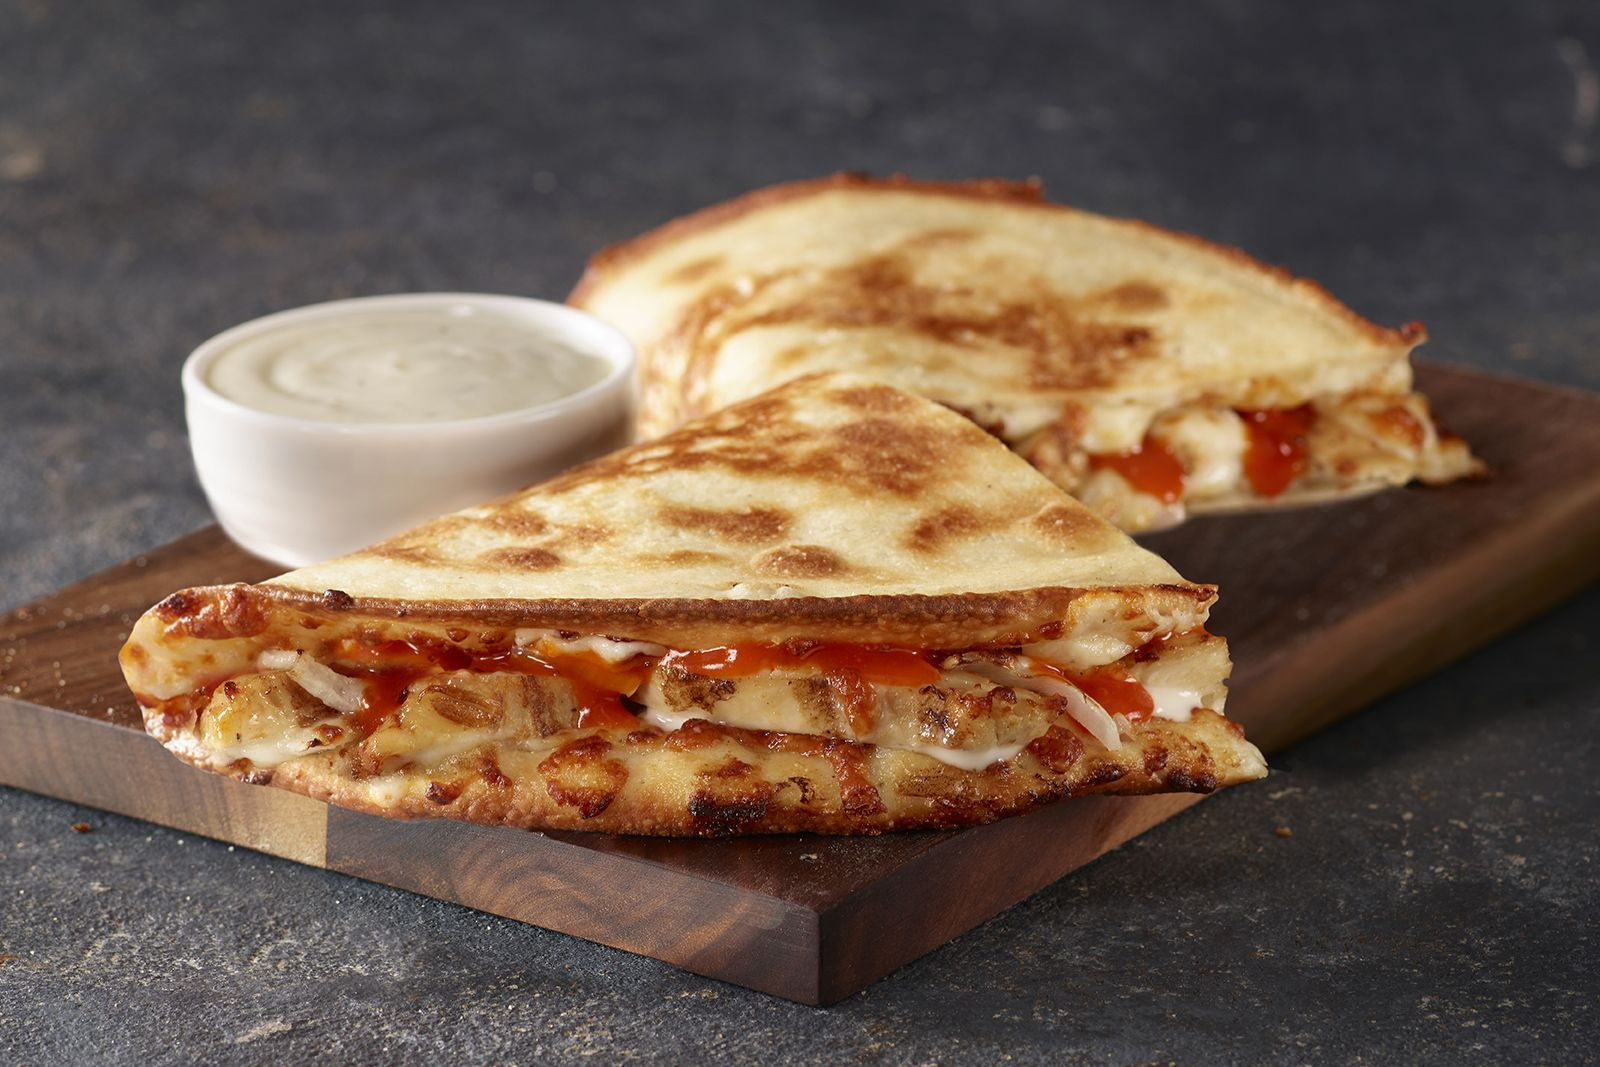 Papa John's New Grilled Buffalo Chicken Papadia Brings the Heat - But Not the Mess - Of Traditional Chicken Wings